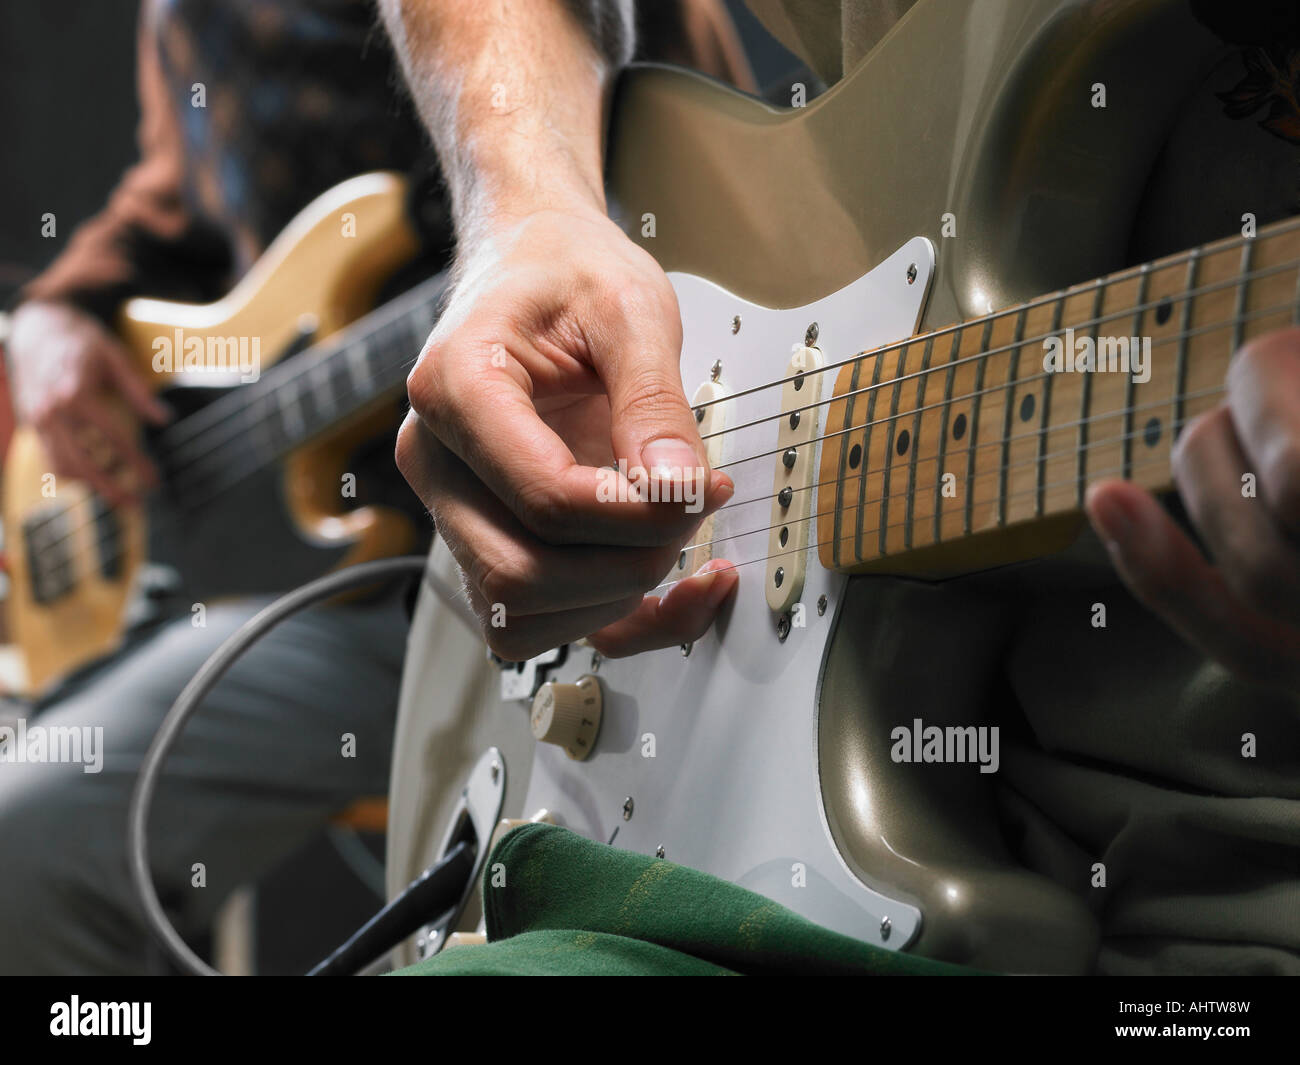 Two electric guitar players close up on hands. - Stock Image